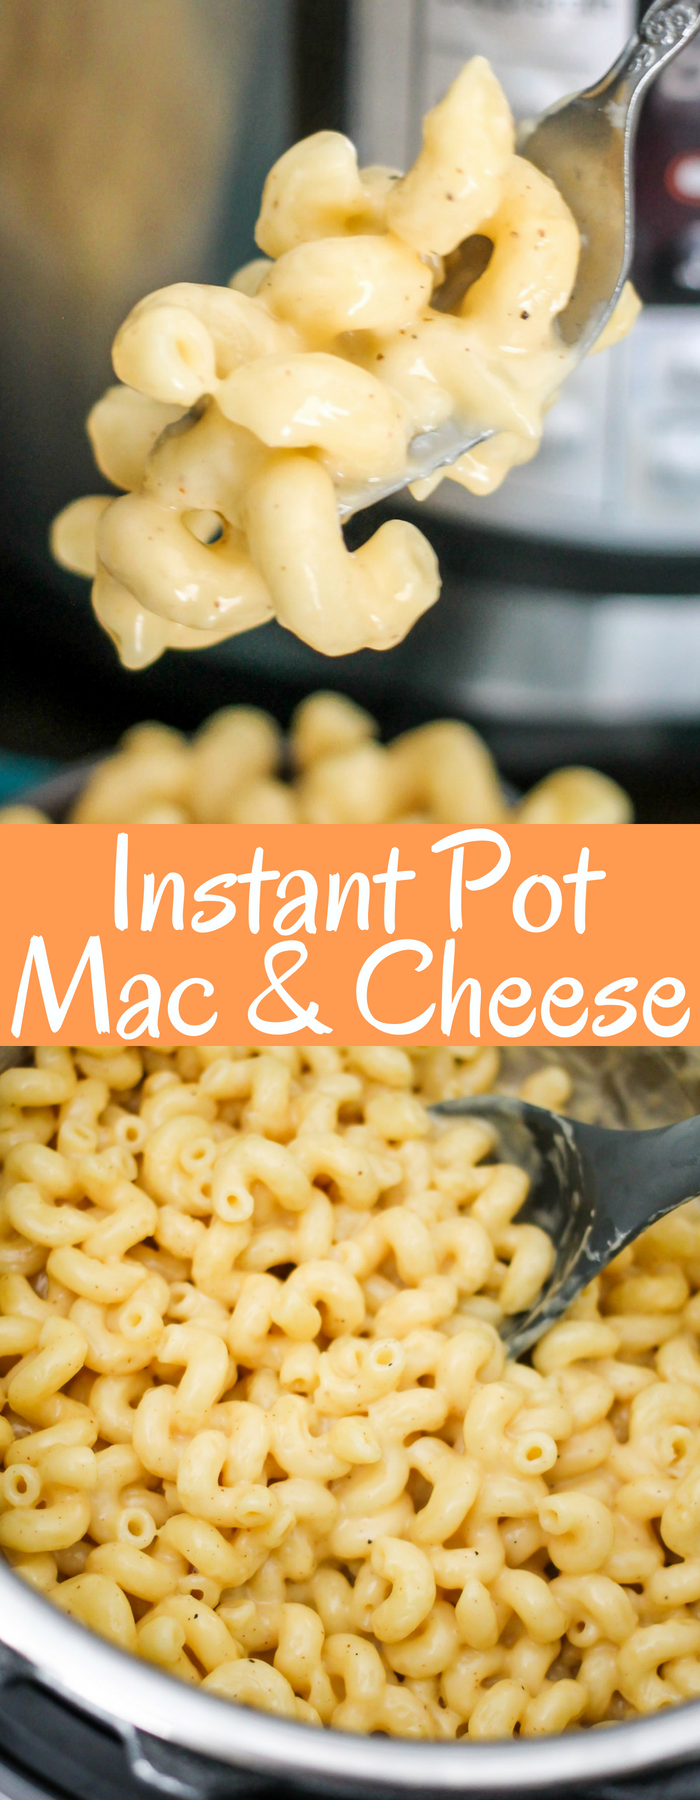 Instant Pot Mac and Cheese takes hardly any time to cook, is majorly creamy and delicious, and will become your go-to mac and cheese recipe!